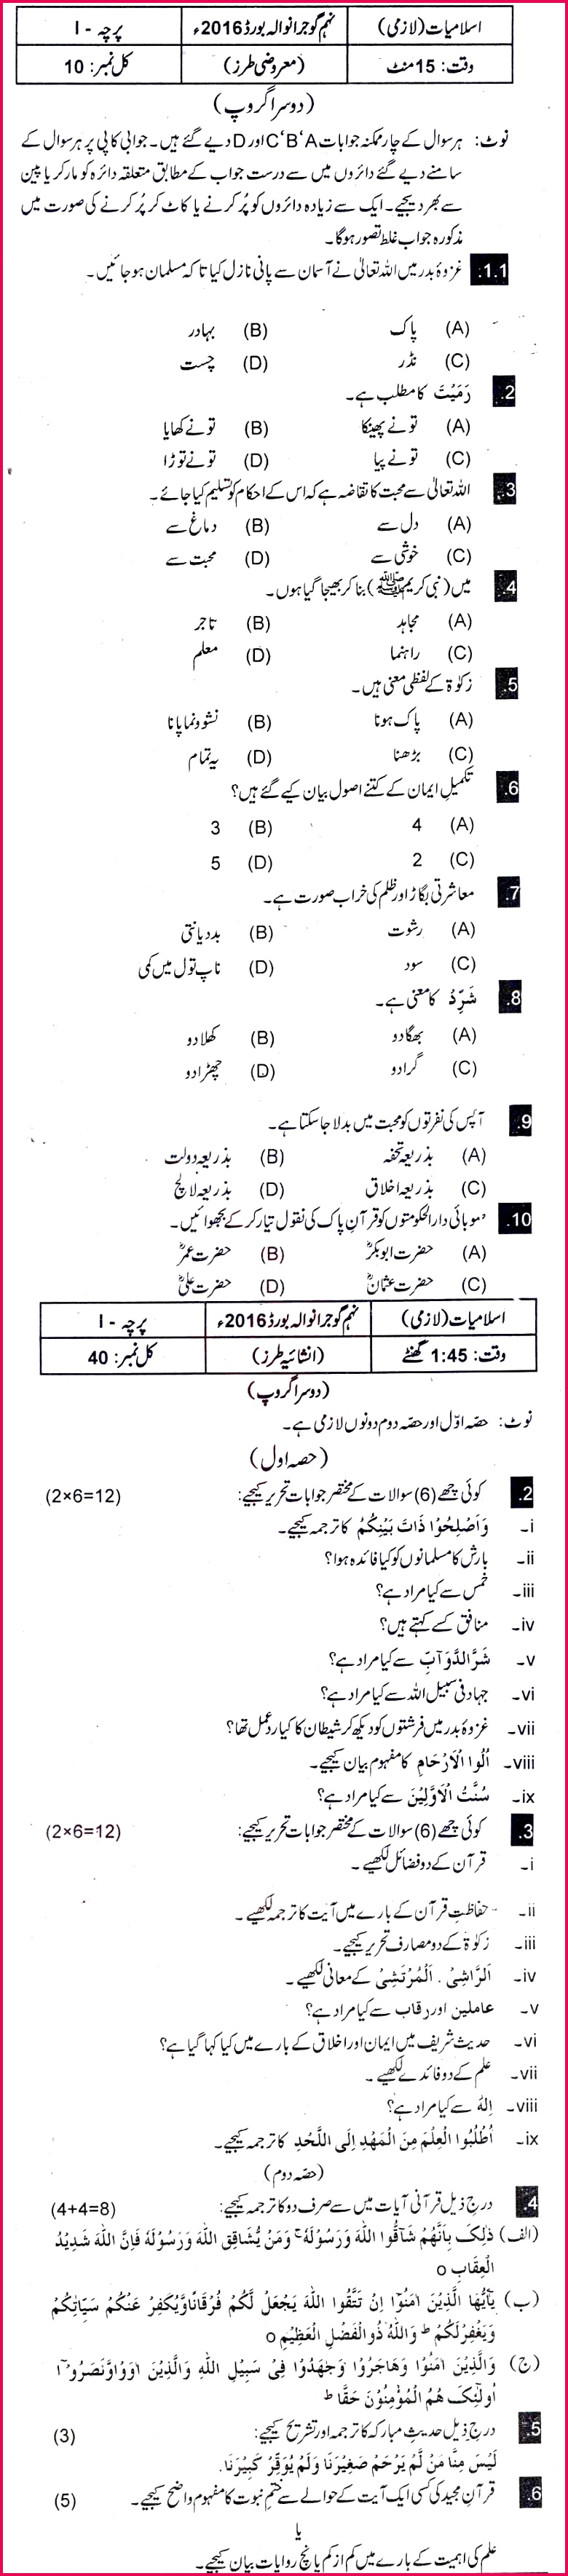 islamiat pulsory 9th class past paper group 2 bise gujranwala